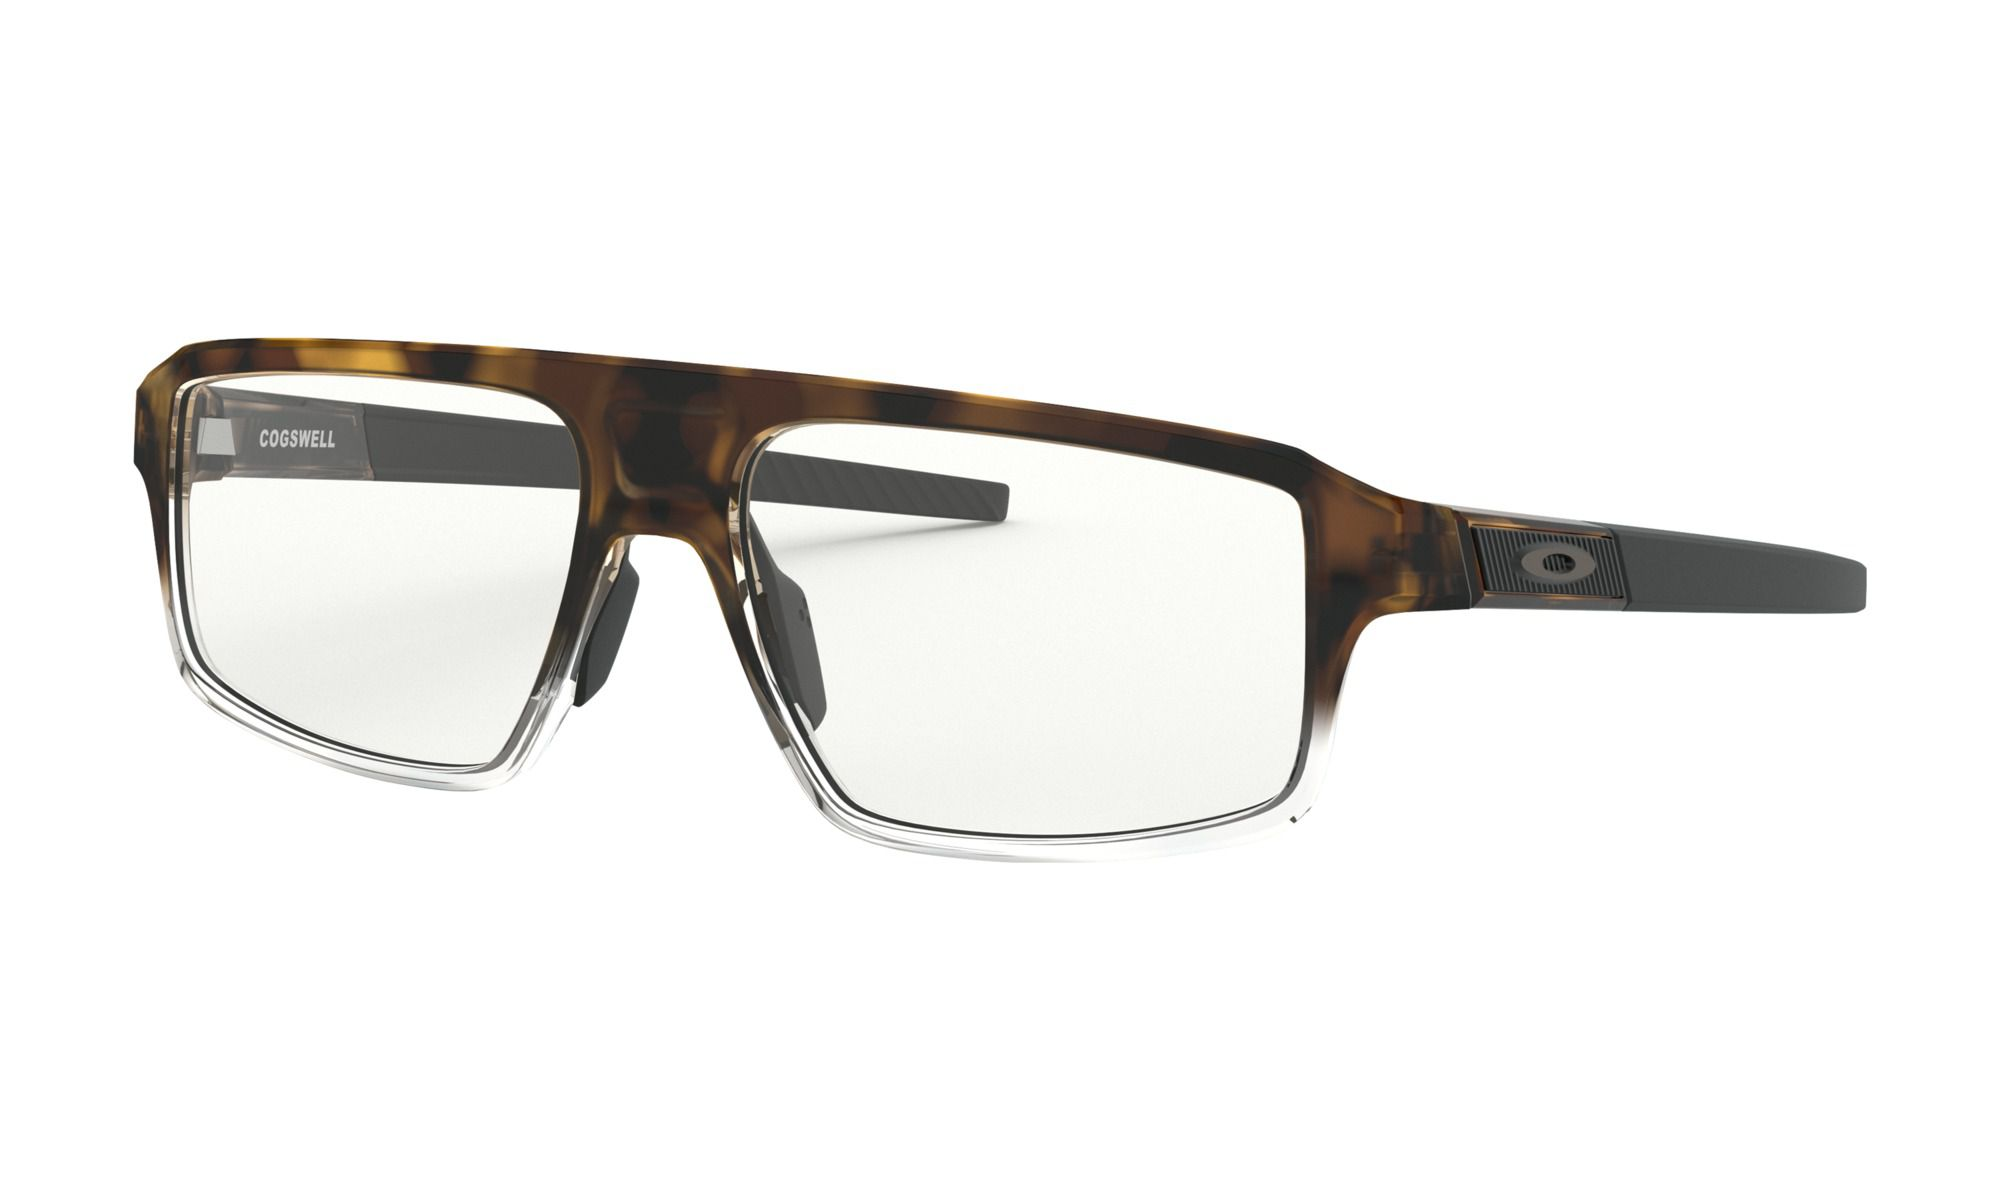 Óculos Oakley Cogswell Brown Tortoise